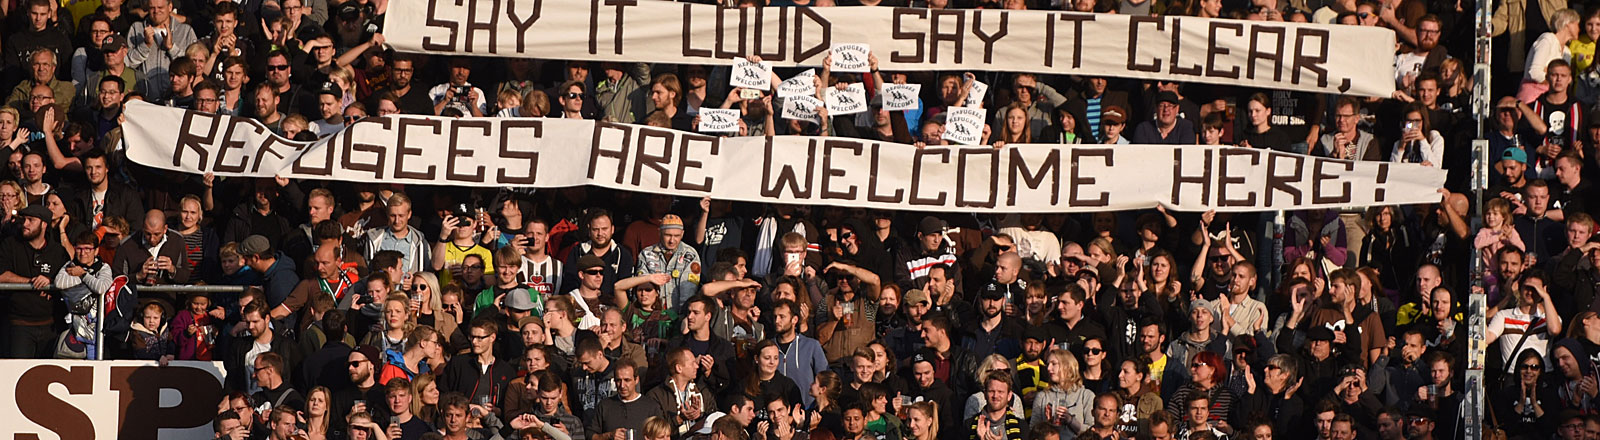 "Fans des FC St. Pauli mit  ""Refugees are welcome"" Poster im Stadion"